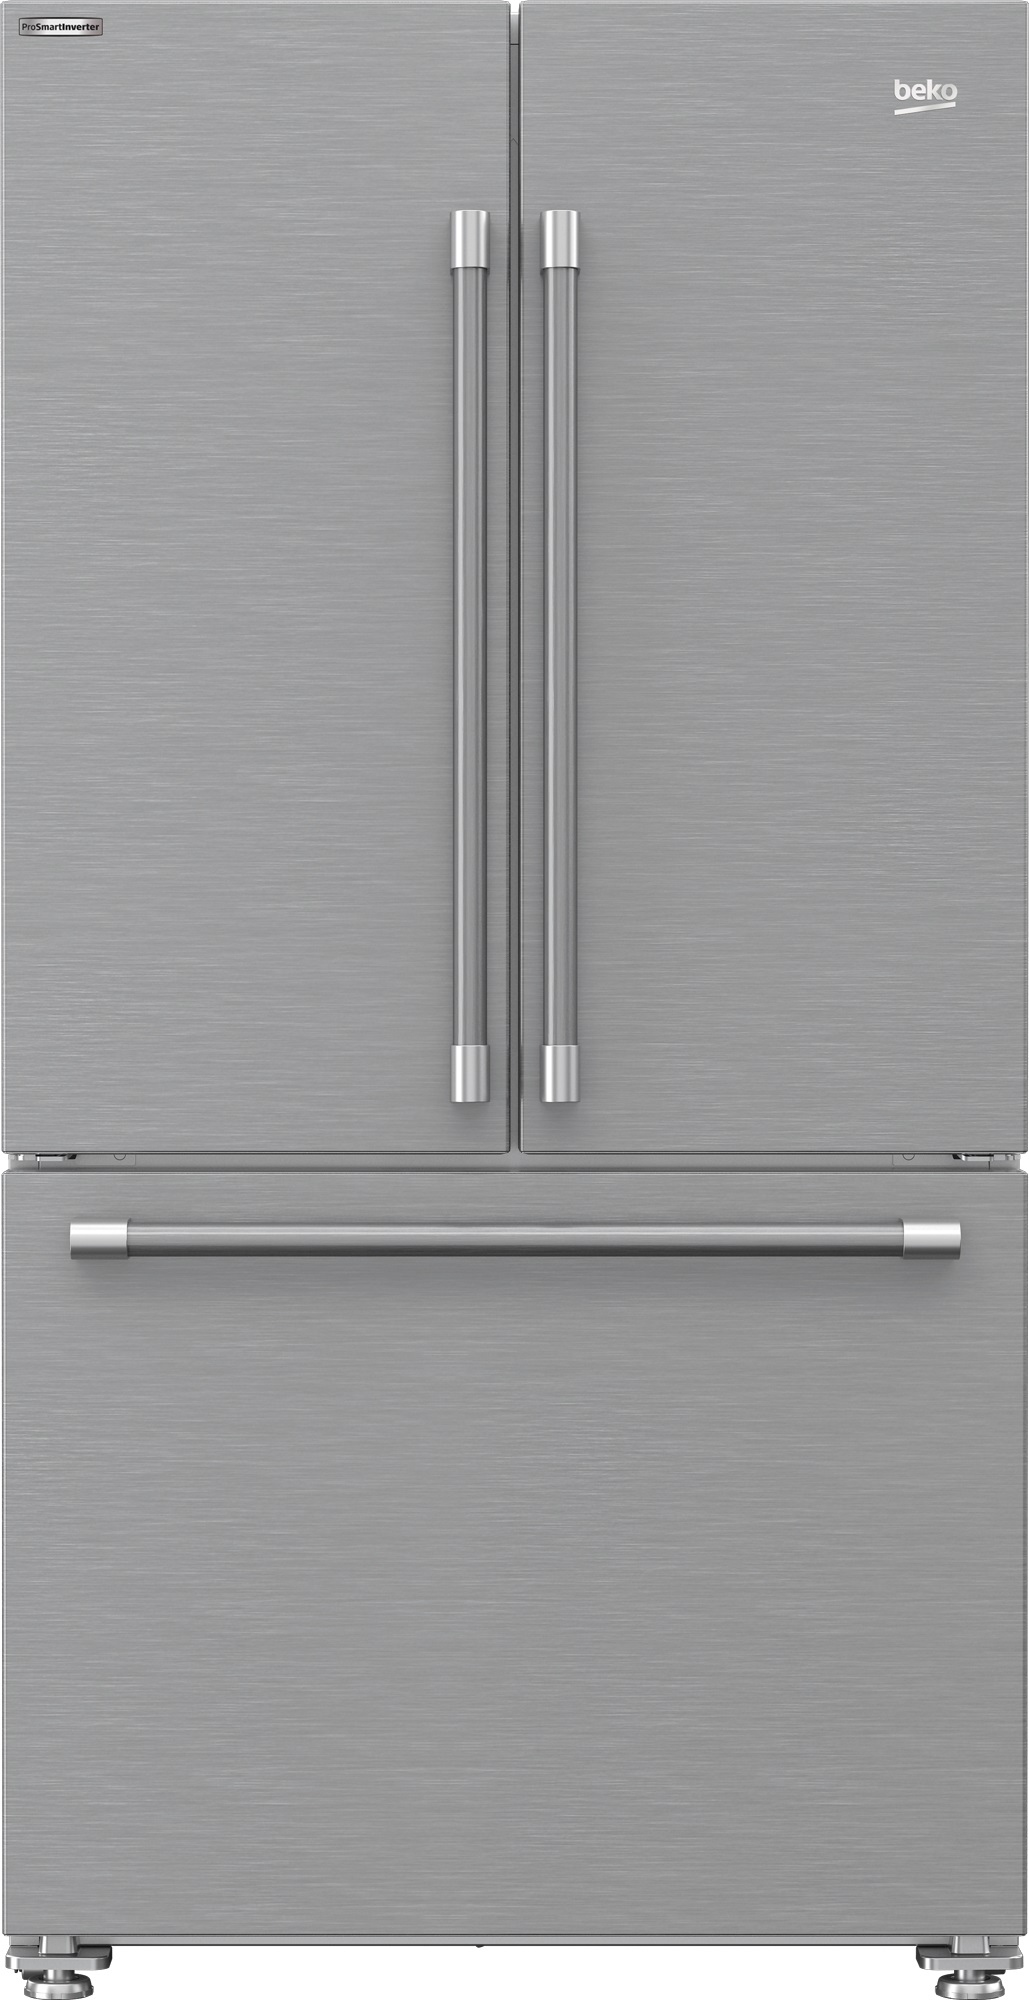 Front view of Beko BFFD3624SS French door refrigerator